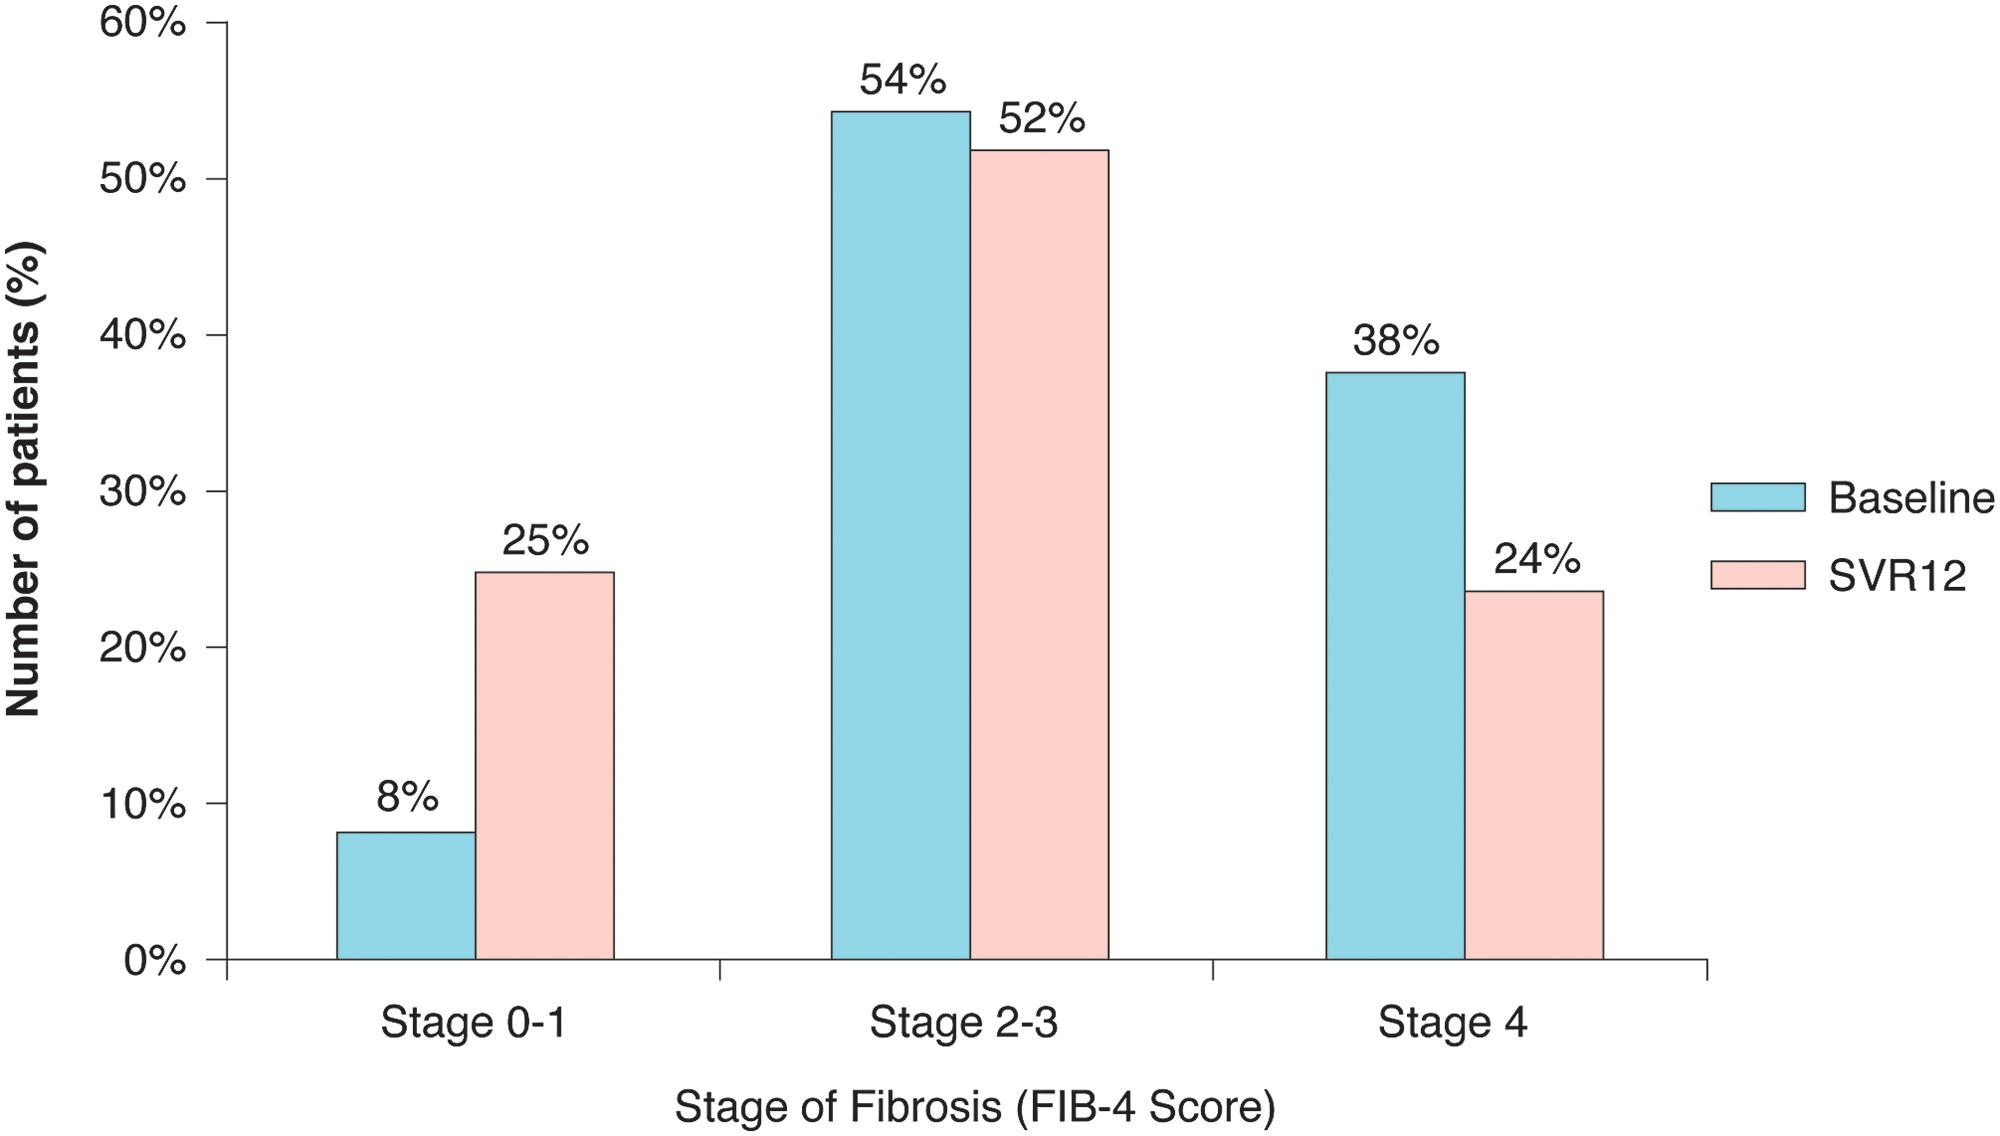 Fibrosis-4 score at baseline and SVR12.